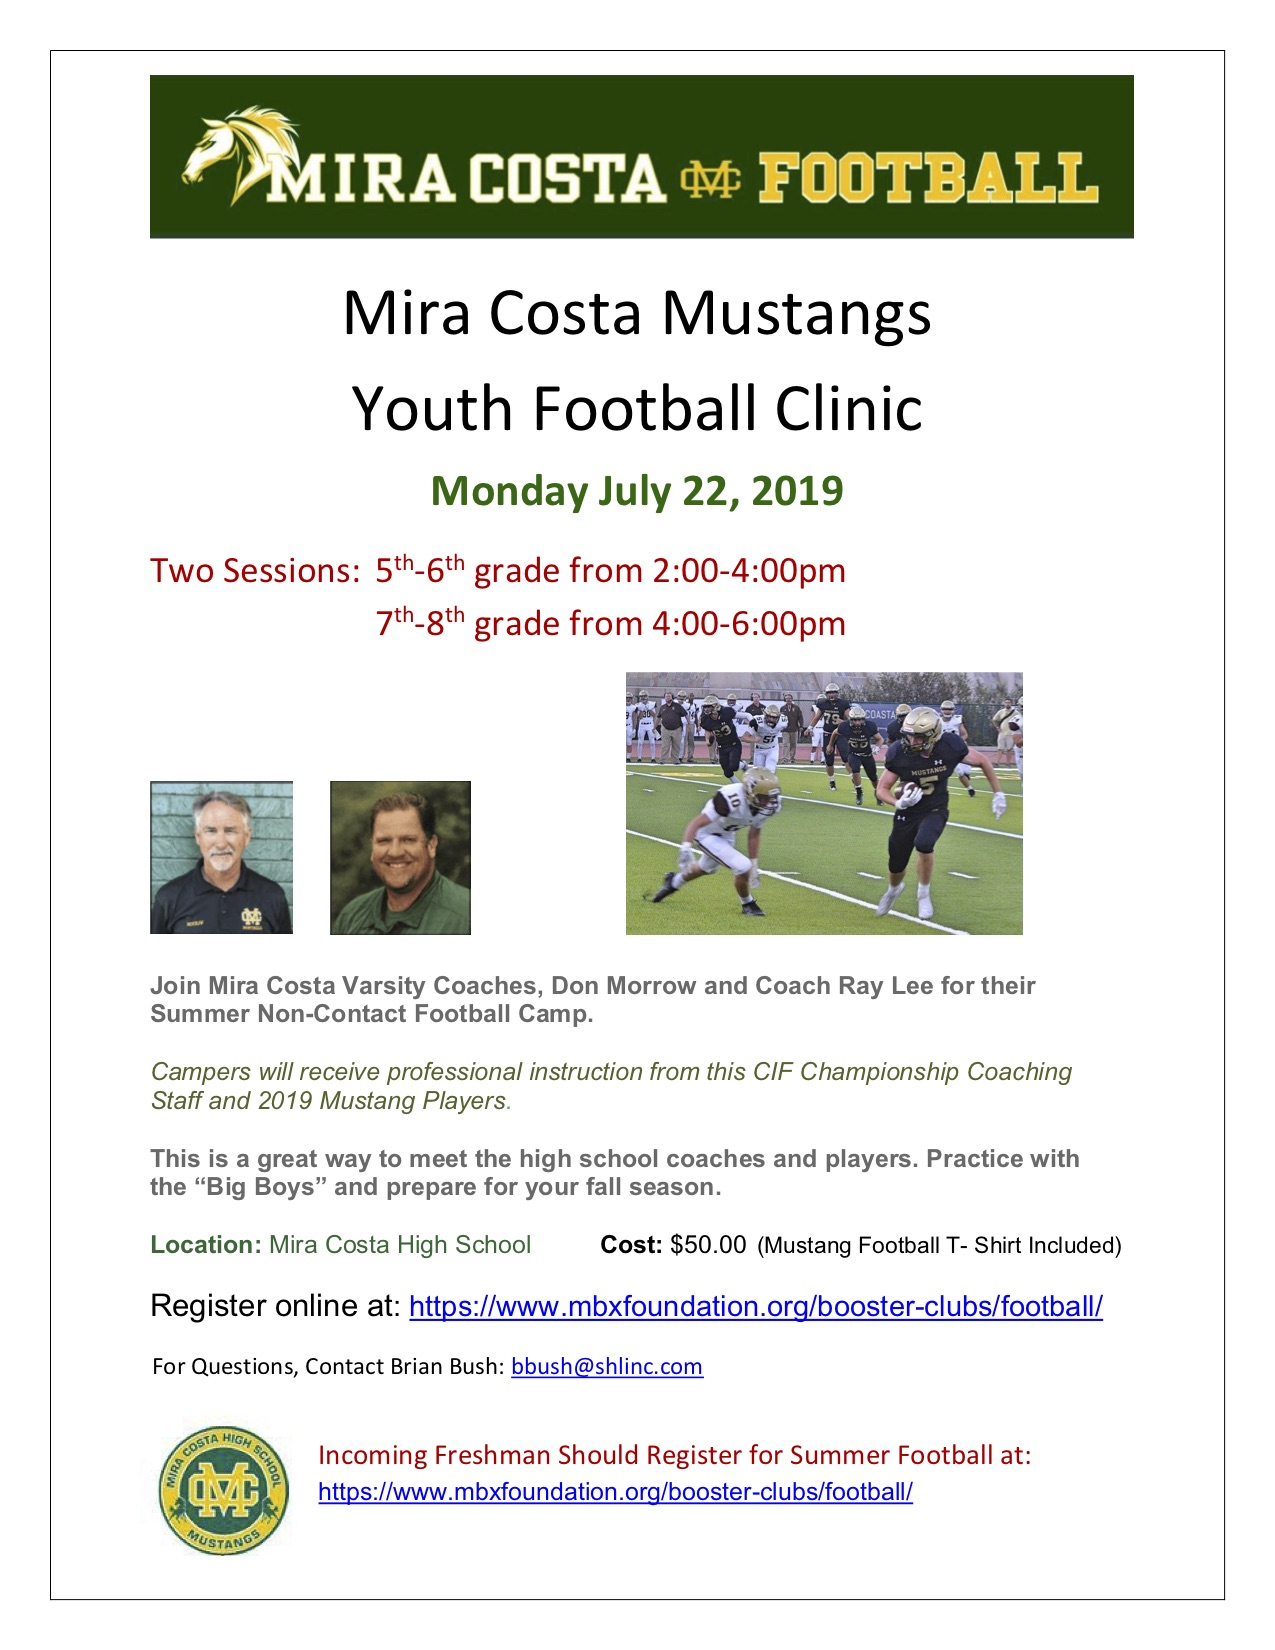 MC Mustangs Youth Football Clinic copy - MBX Foundation